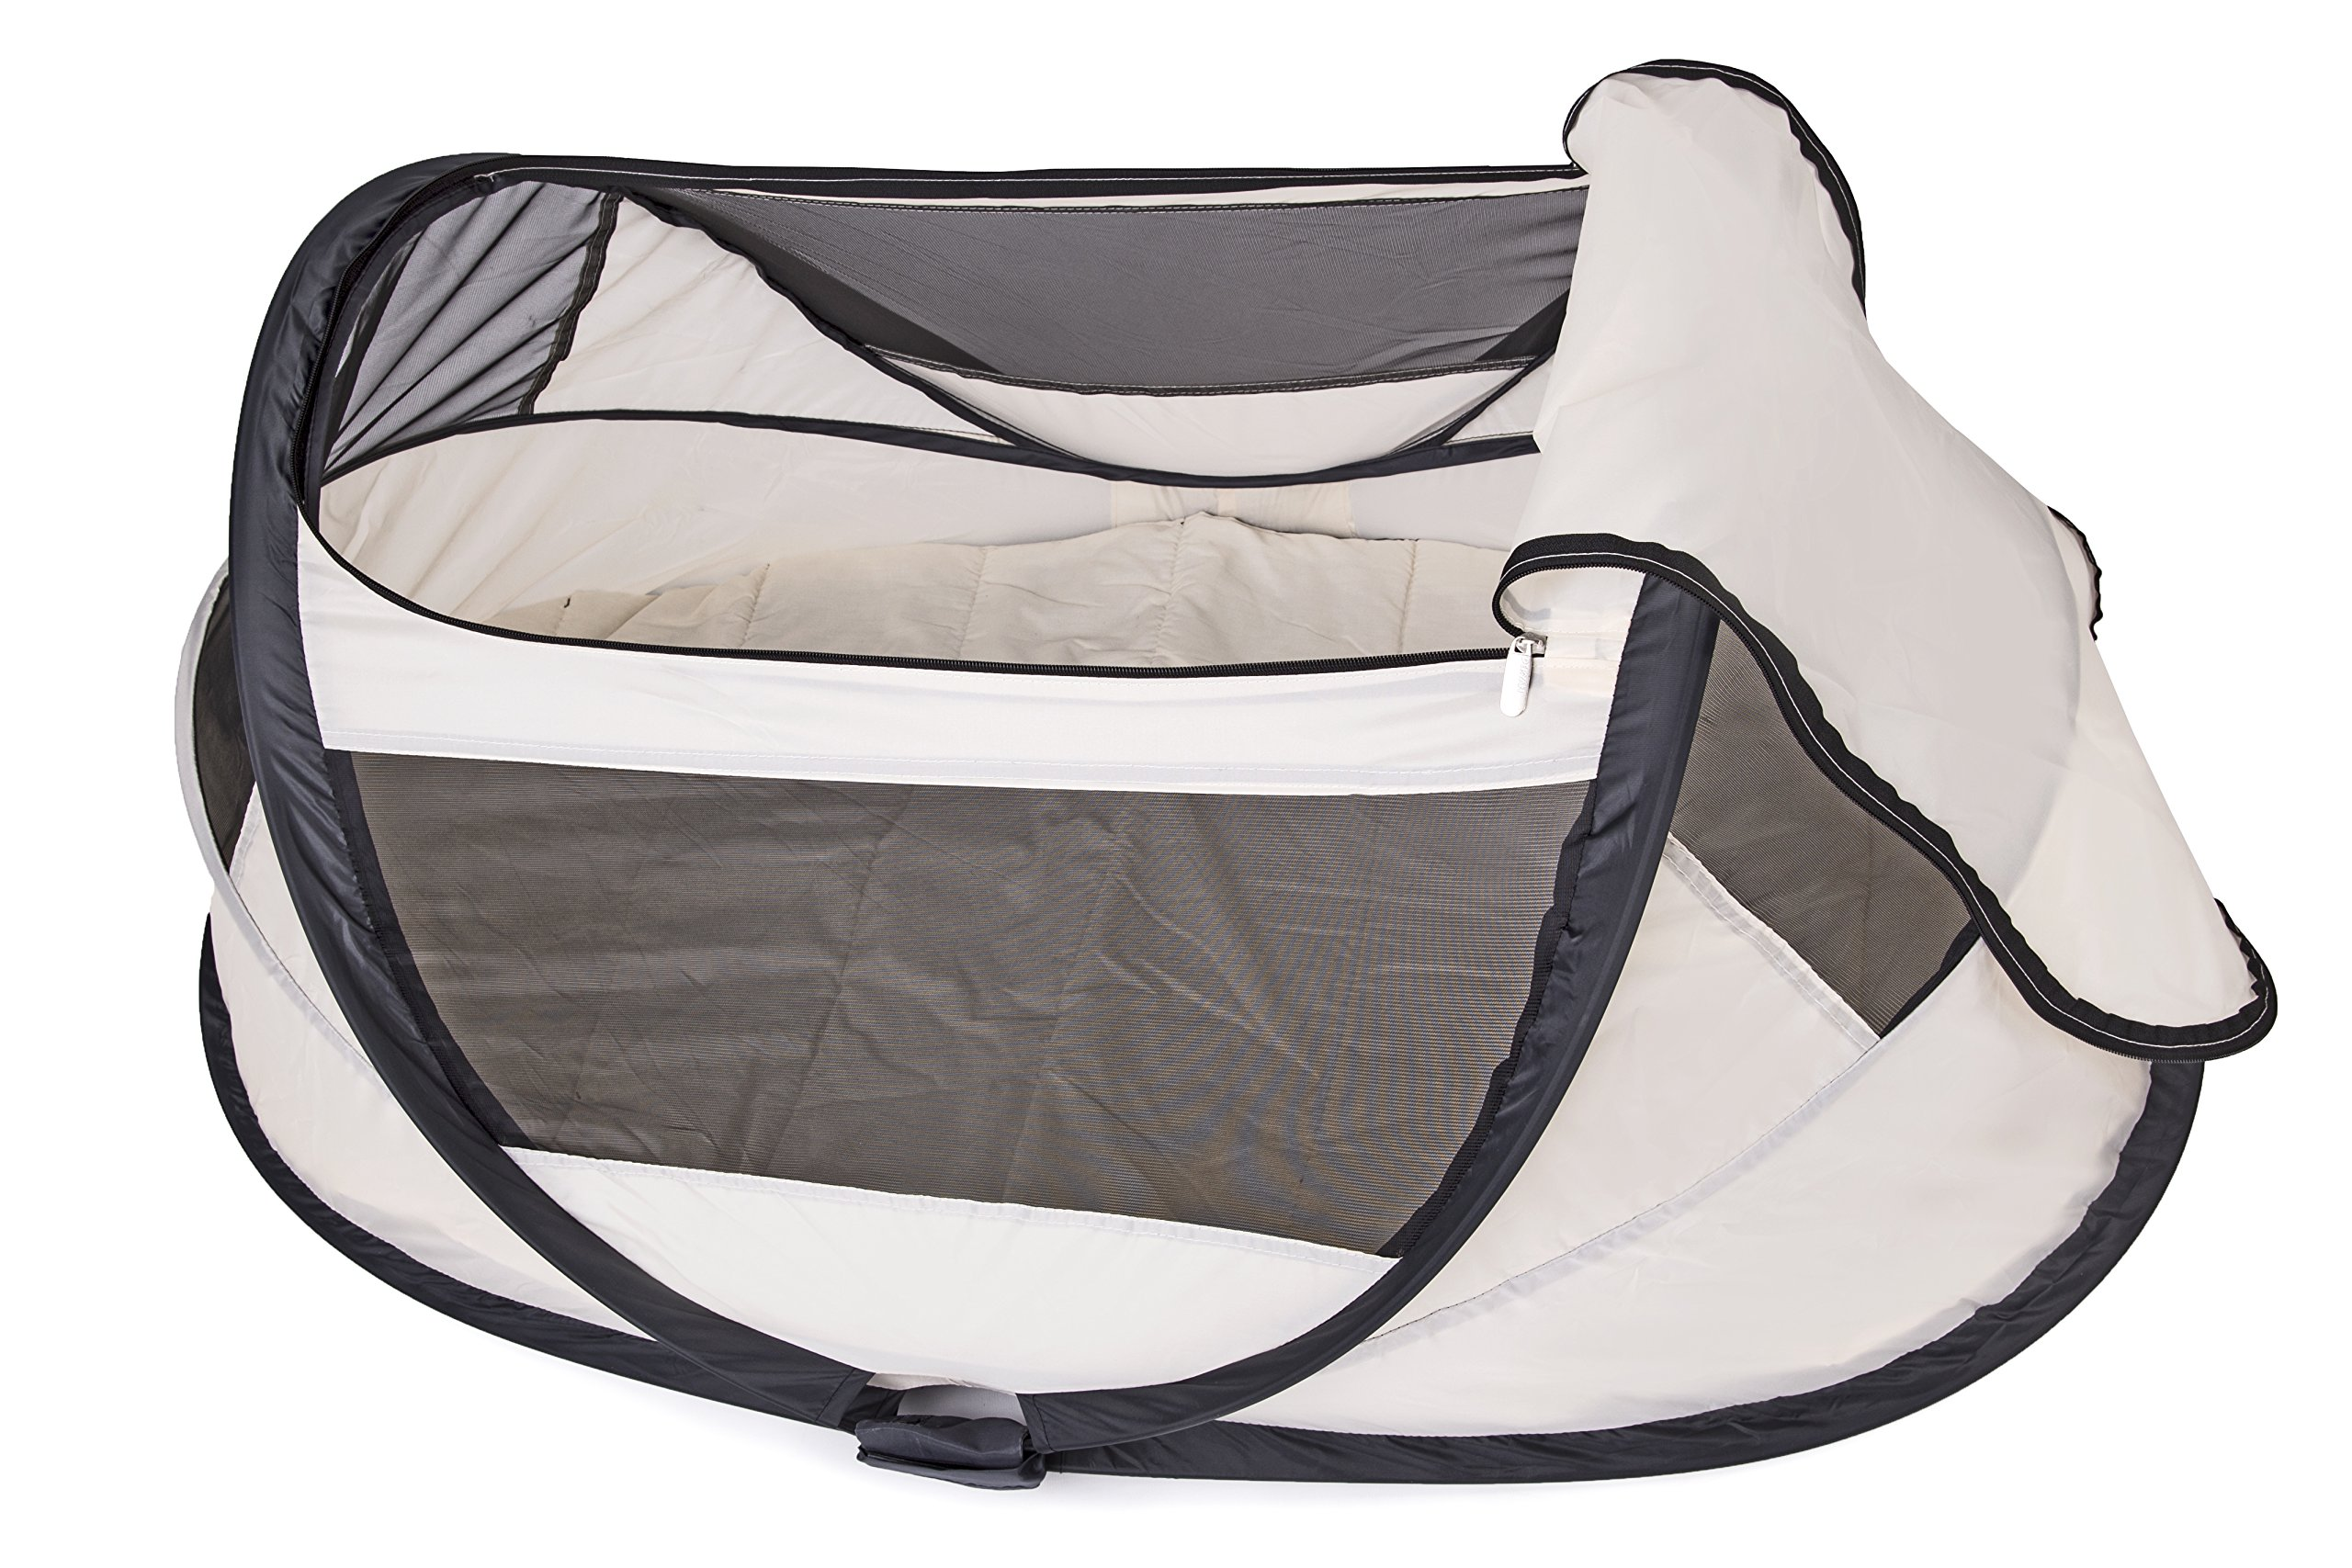 Travel Cot Babybox (Khaki) Deryan 50% UV Protection and flame retardant fabric Setup in 2 seconds and a anti-musquito net  3